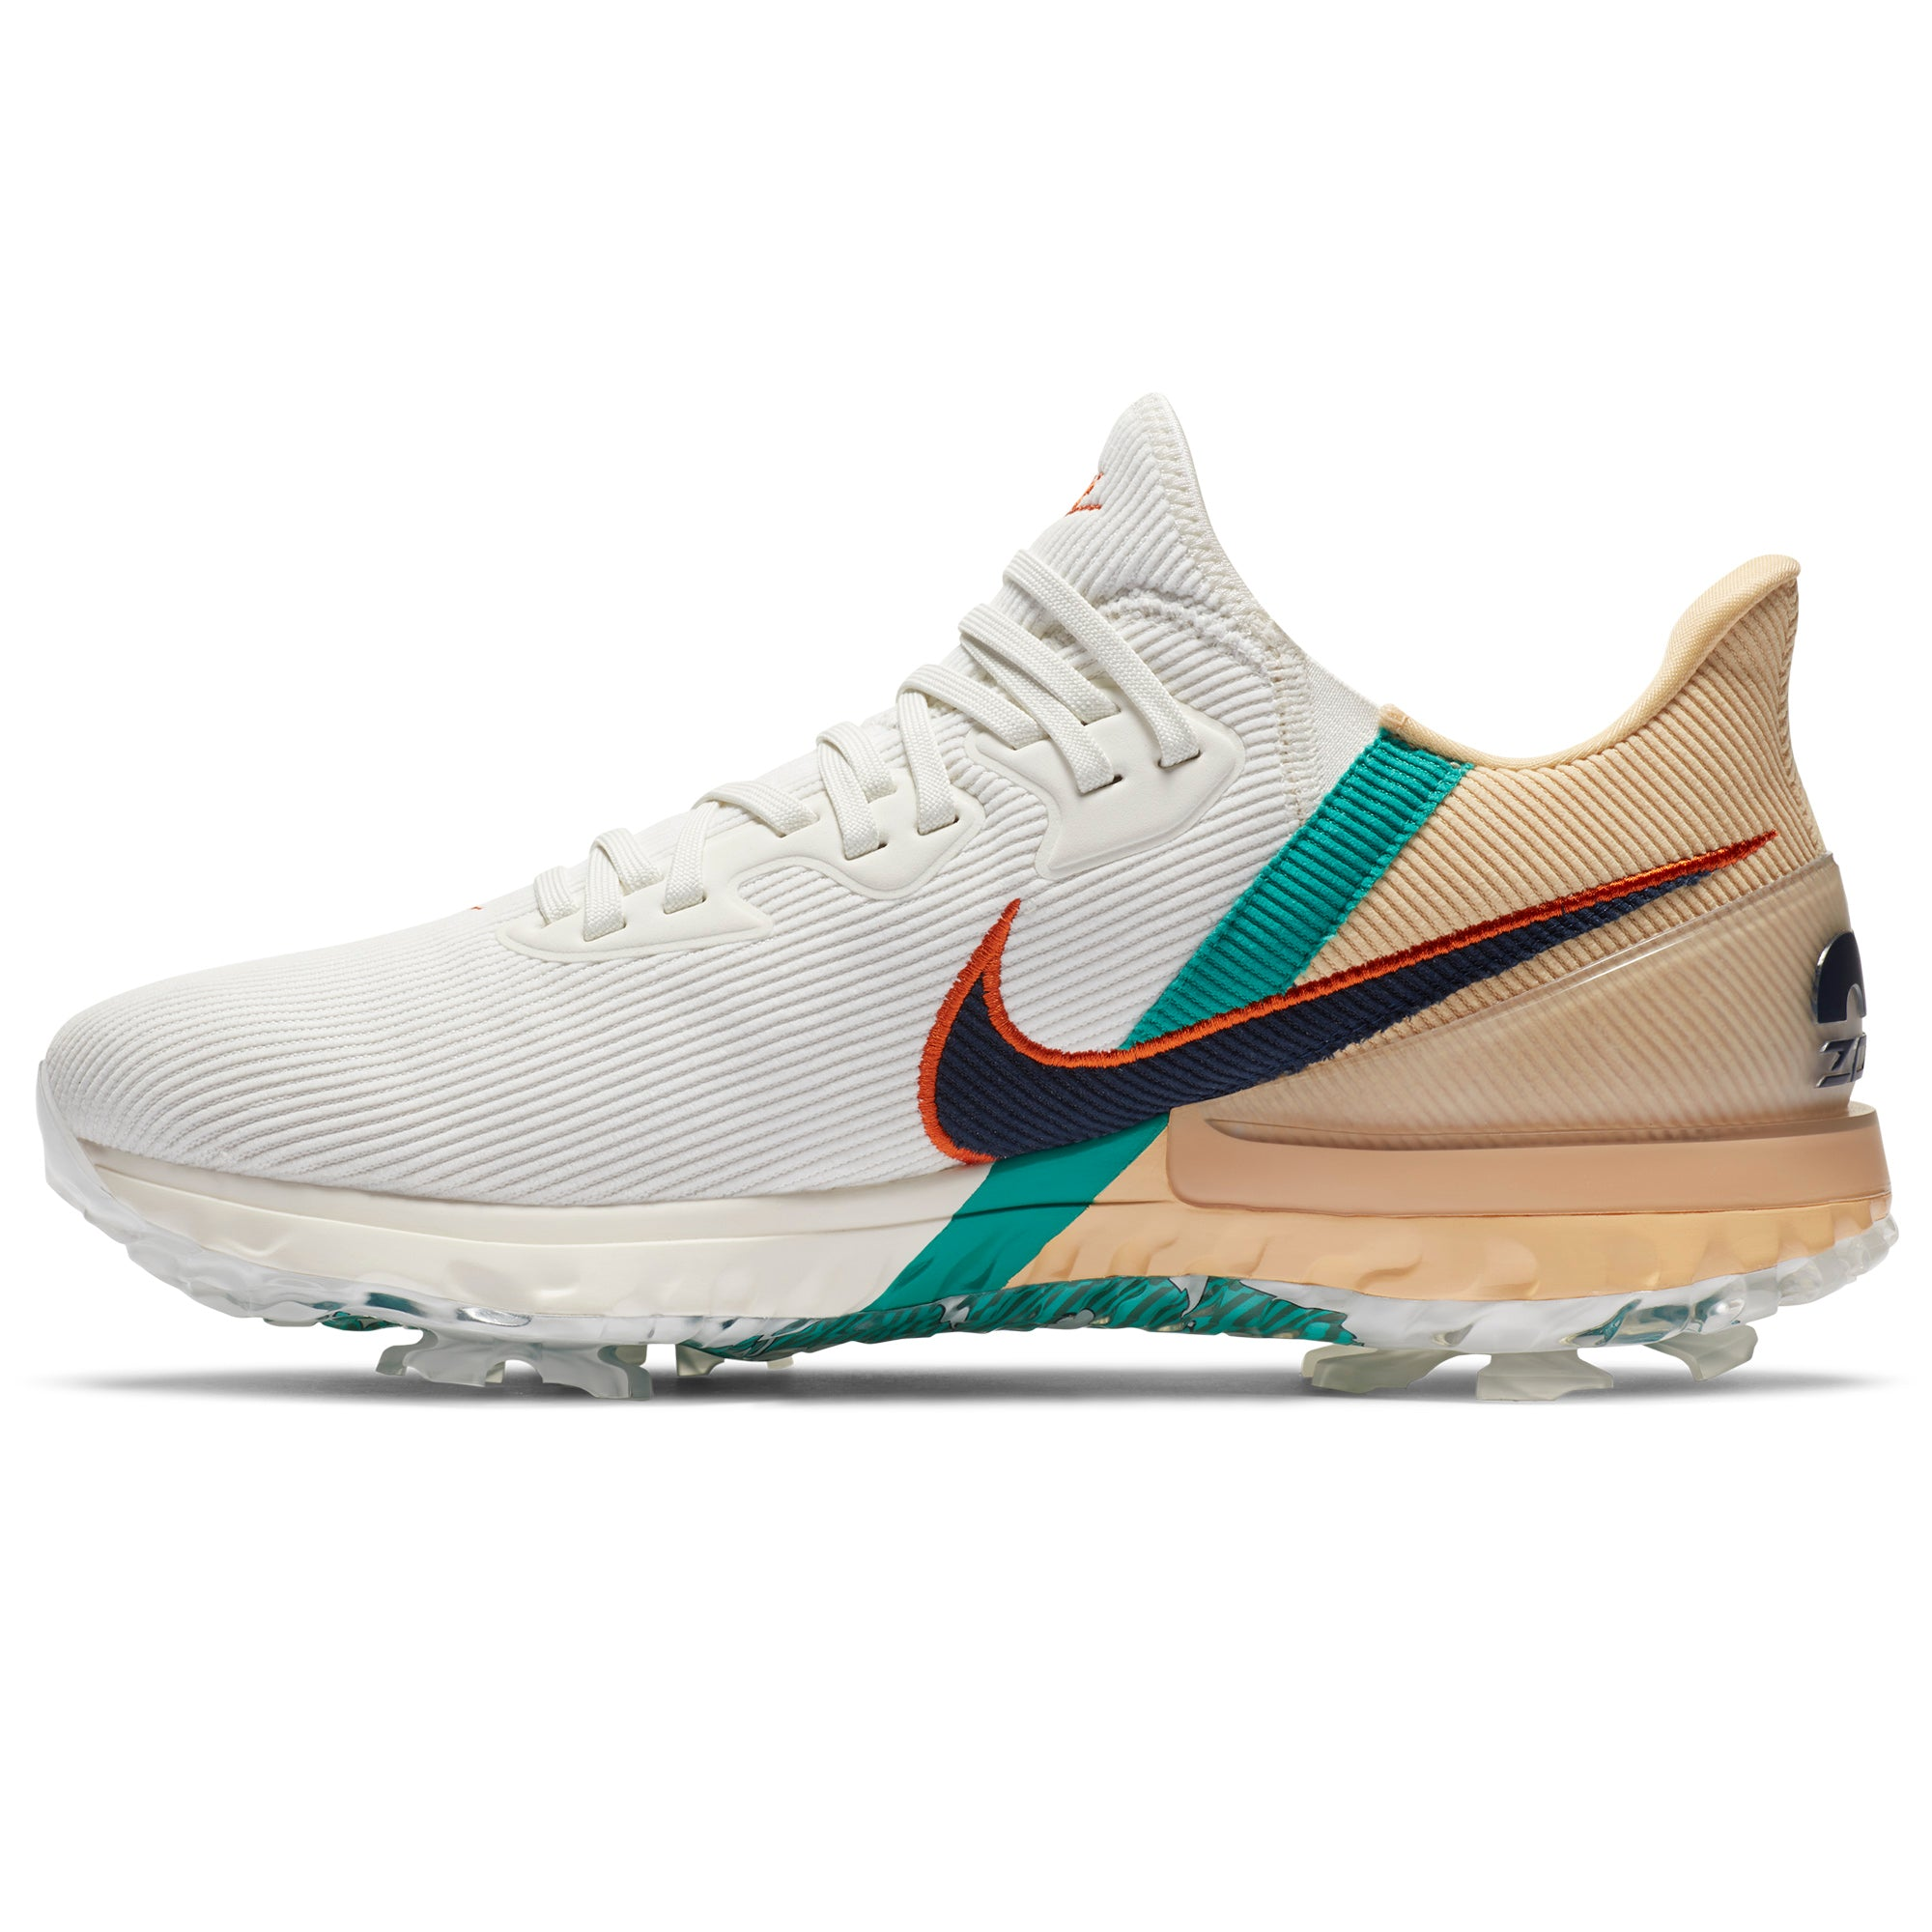 Nike Golf Air Zoom Infinity Tour NRG Shoes CT6667